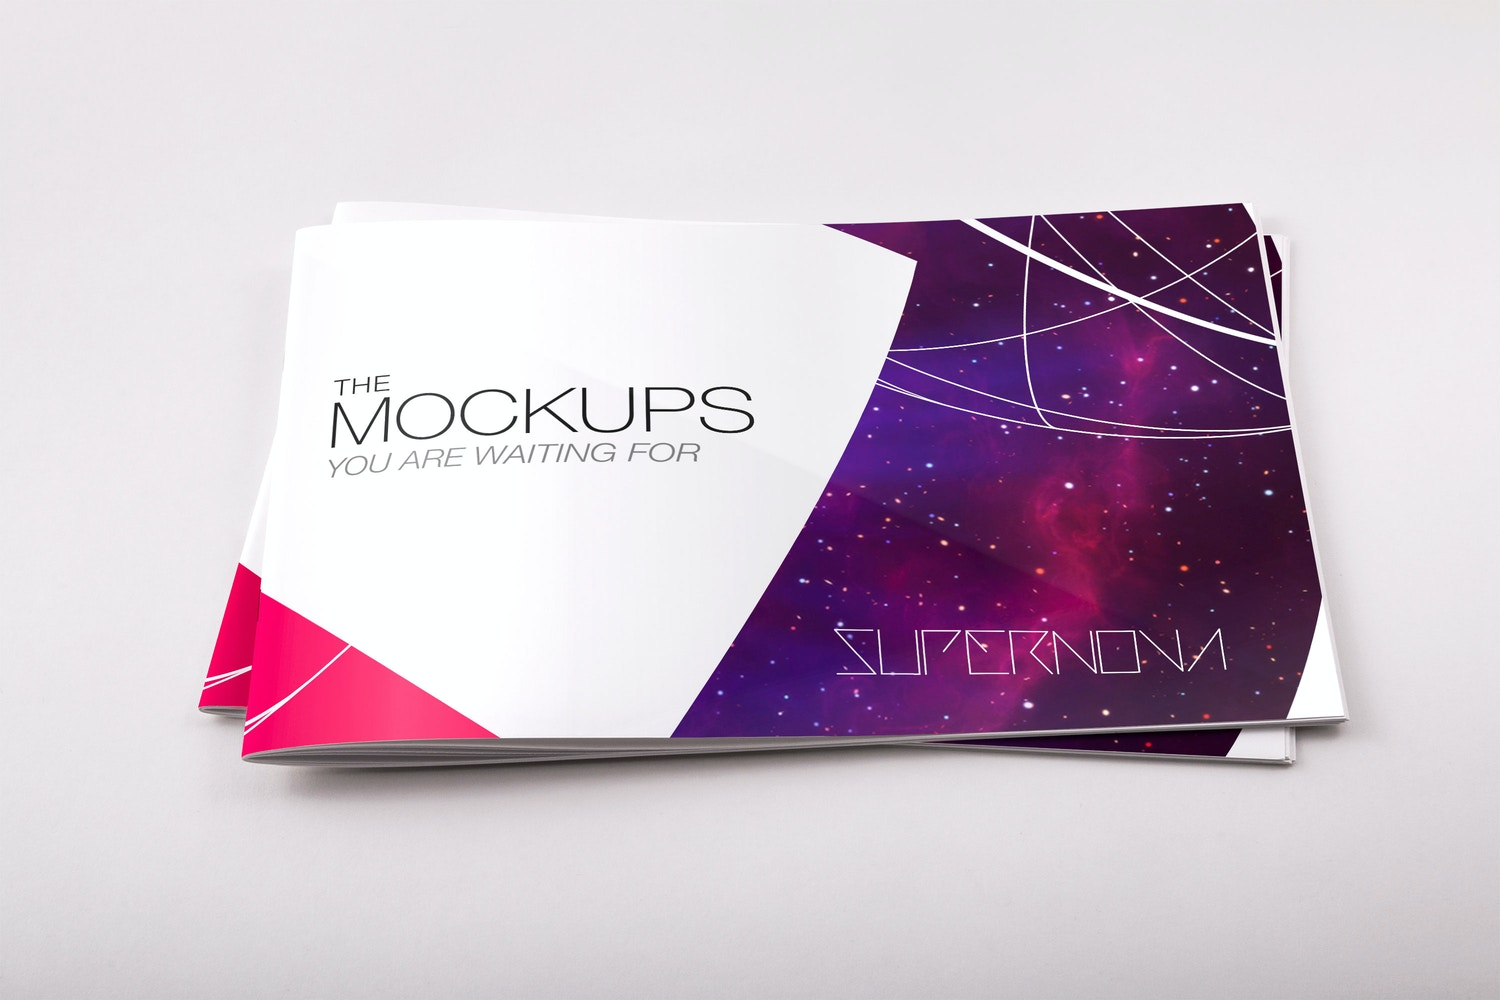 Softcover Landscape Catalog PSD Mockup 03 by Original Mockups on Original Mockups